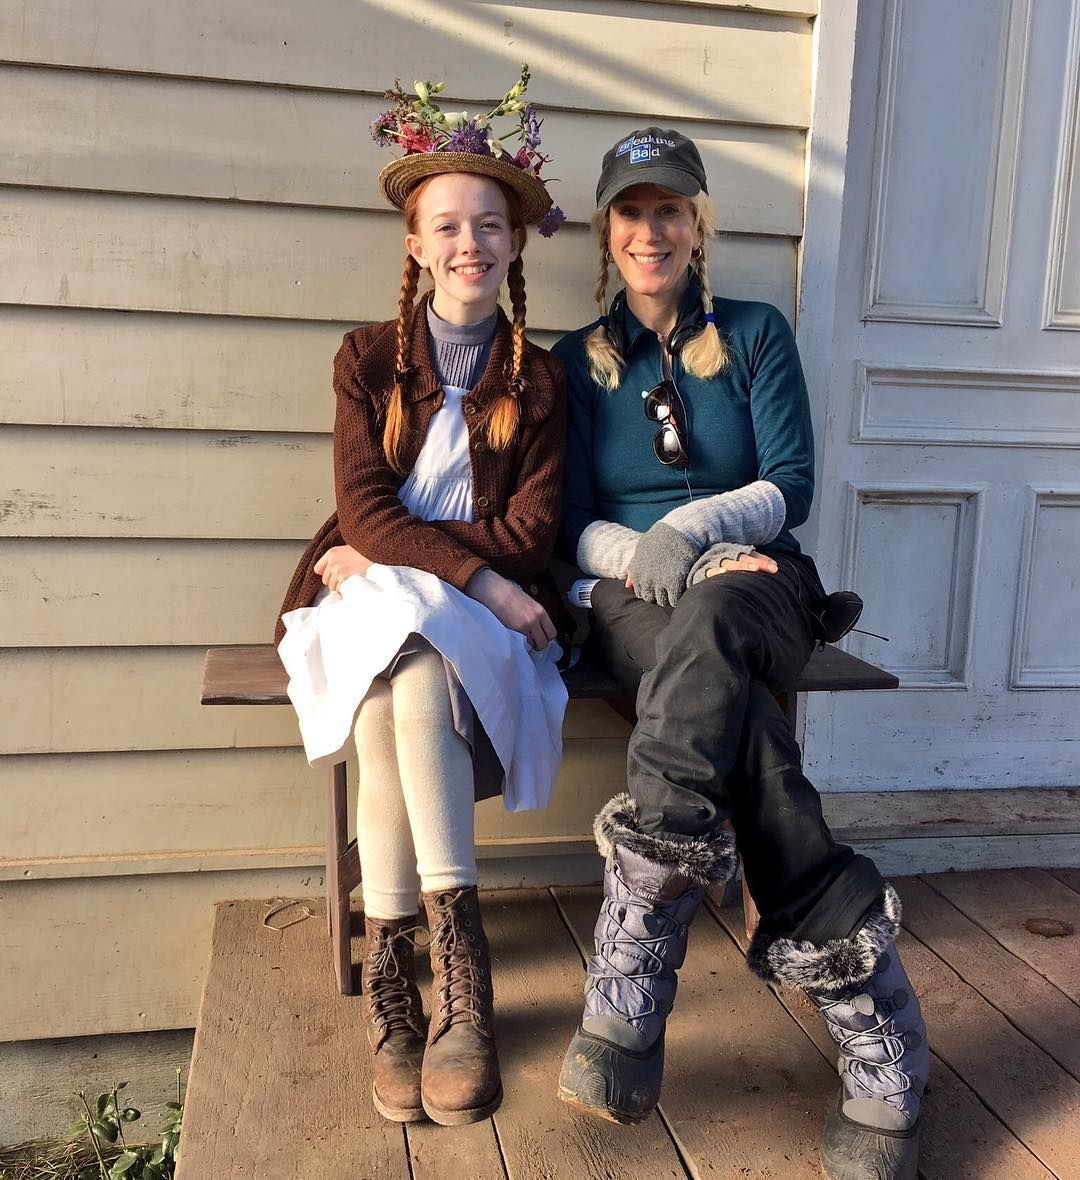 Kudos to these two women amybeth mcnulty for her for Anne la maison aux pignons verts film